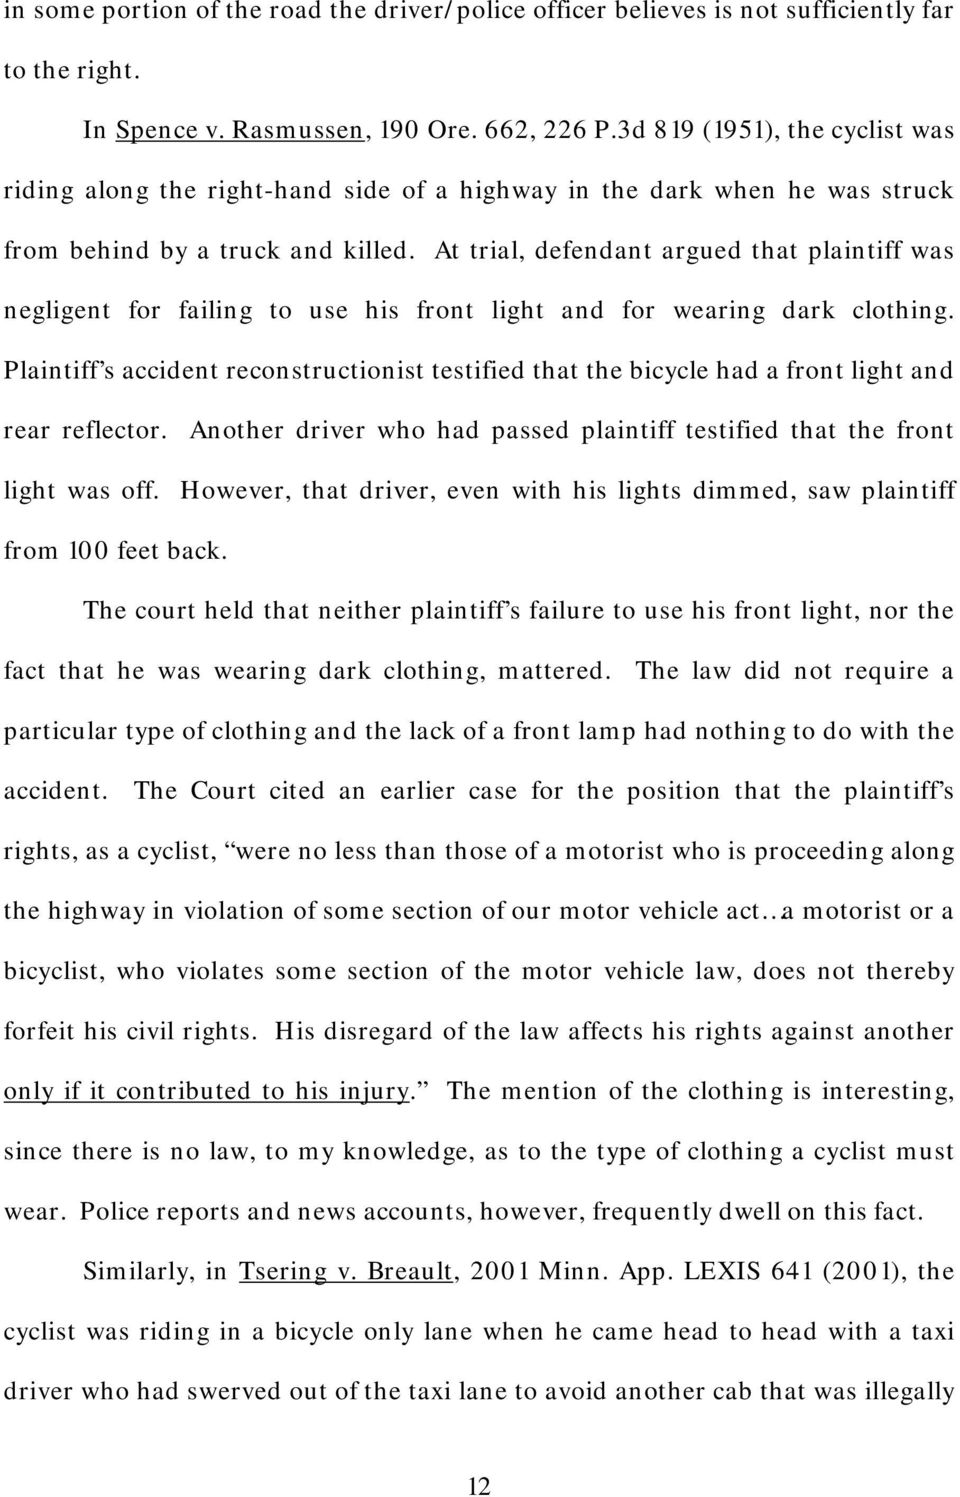 At trial, defendant argued that plaintiff was negligent for failing to use his front light and for wearing dark clothing.